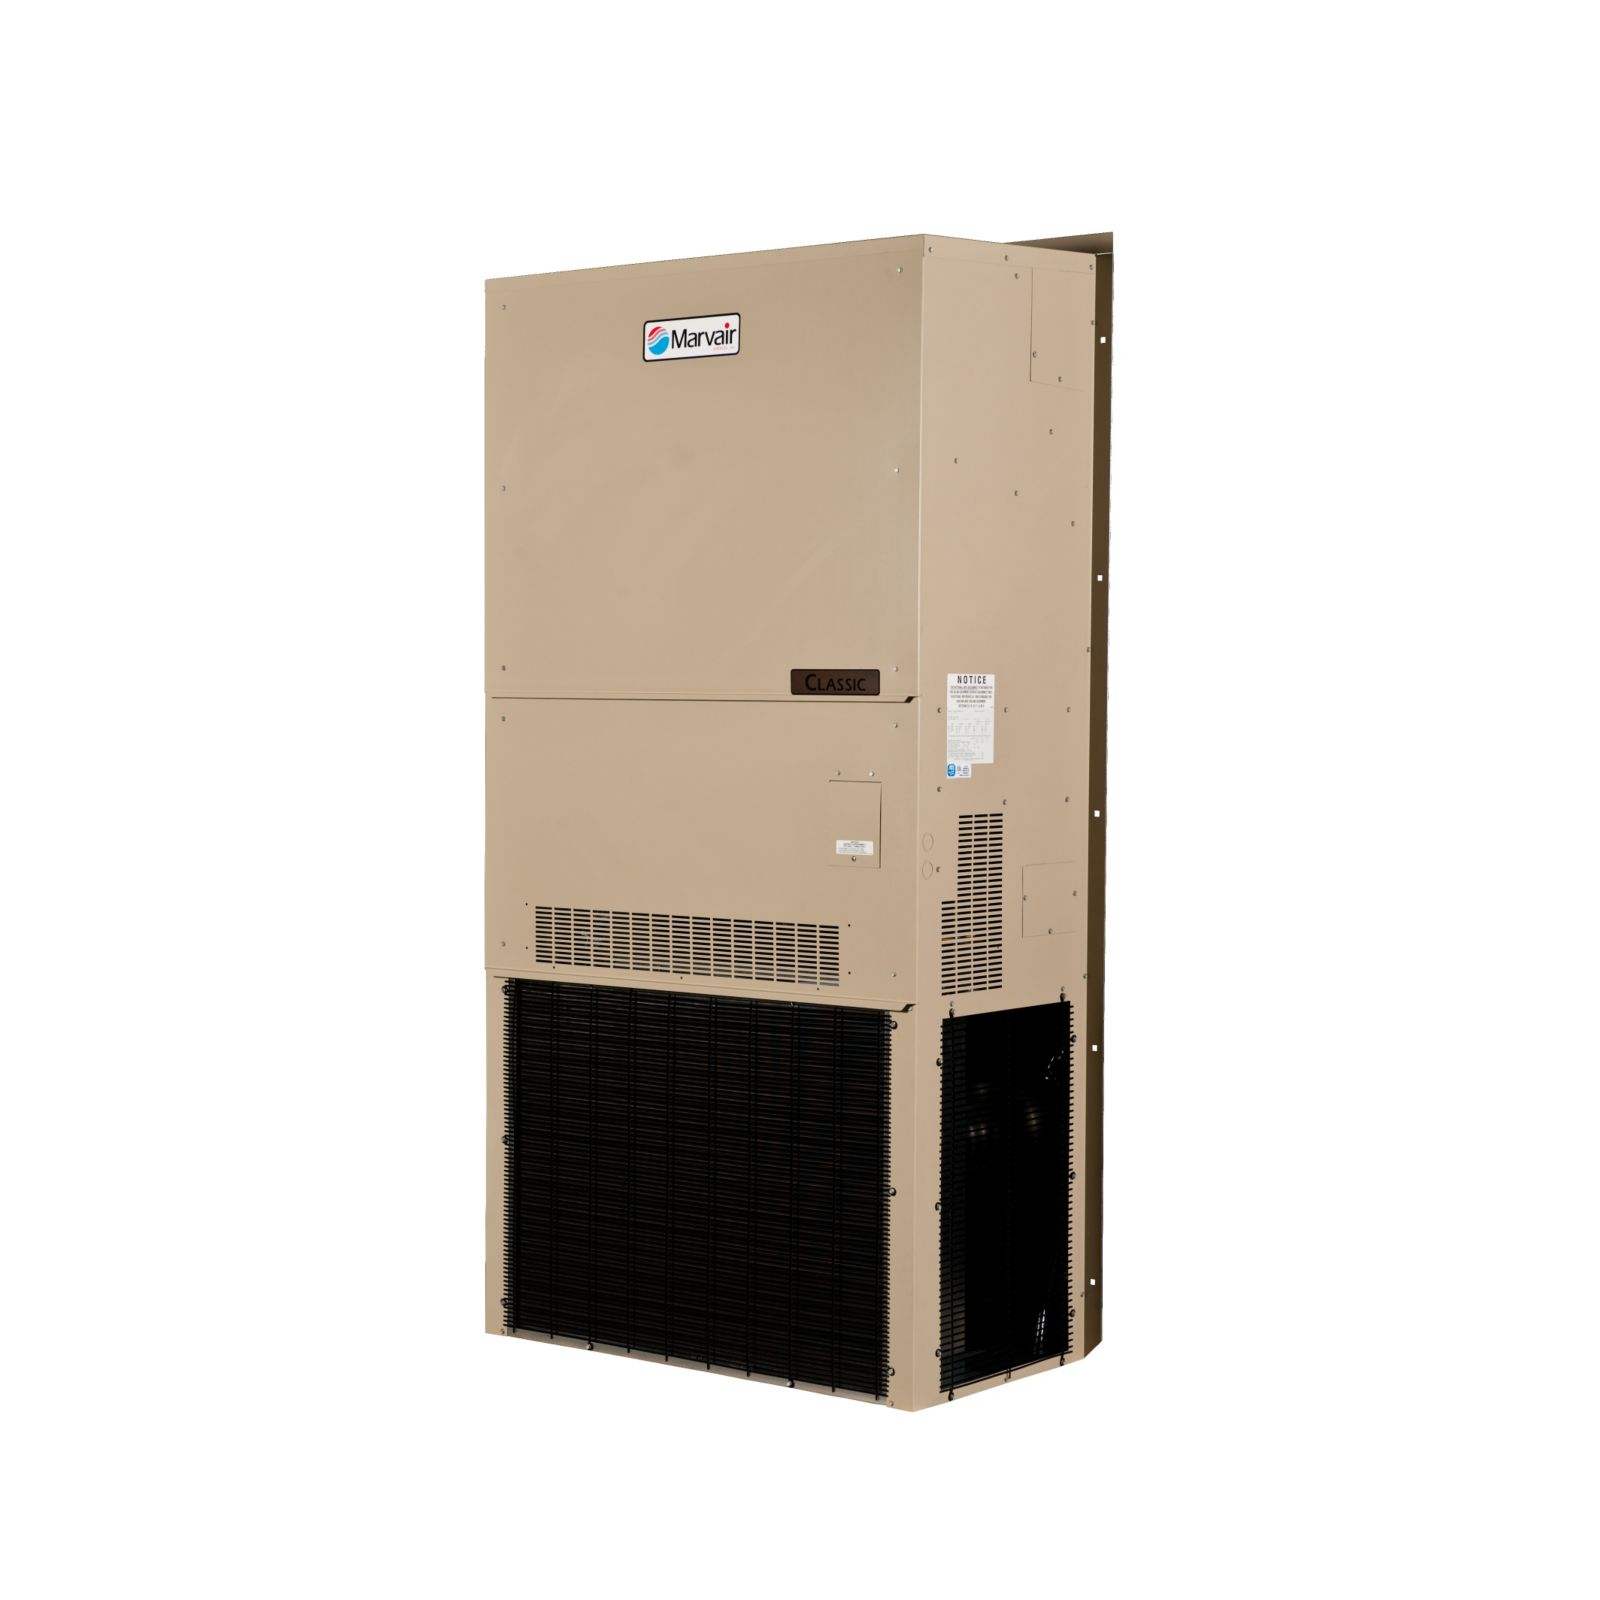 Marvair AVPA72ACC090NU-A2-100 - Wall Mount AC, ComPac I, 6 Ton, 208-230/3,  9KW, Manual Damper, Scroll Compressor, R410A